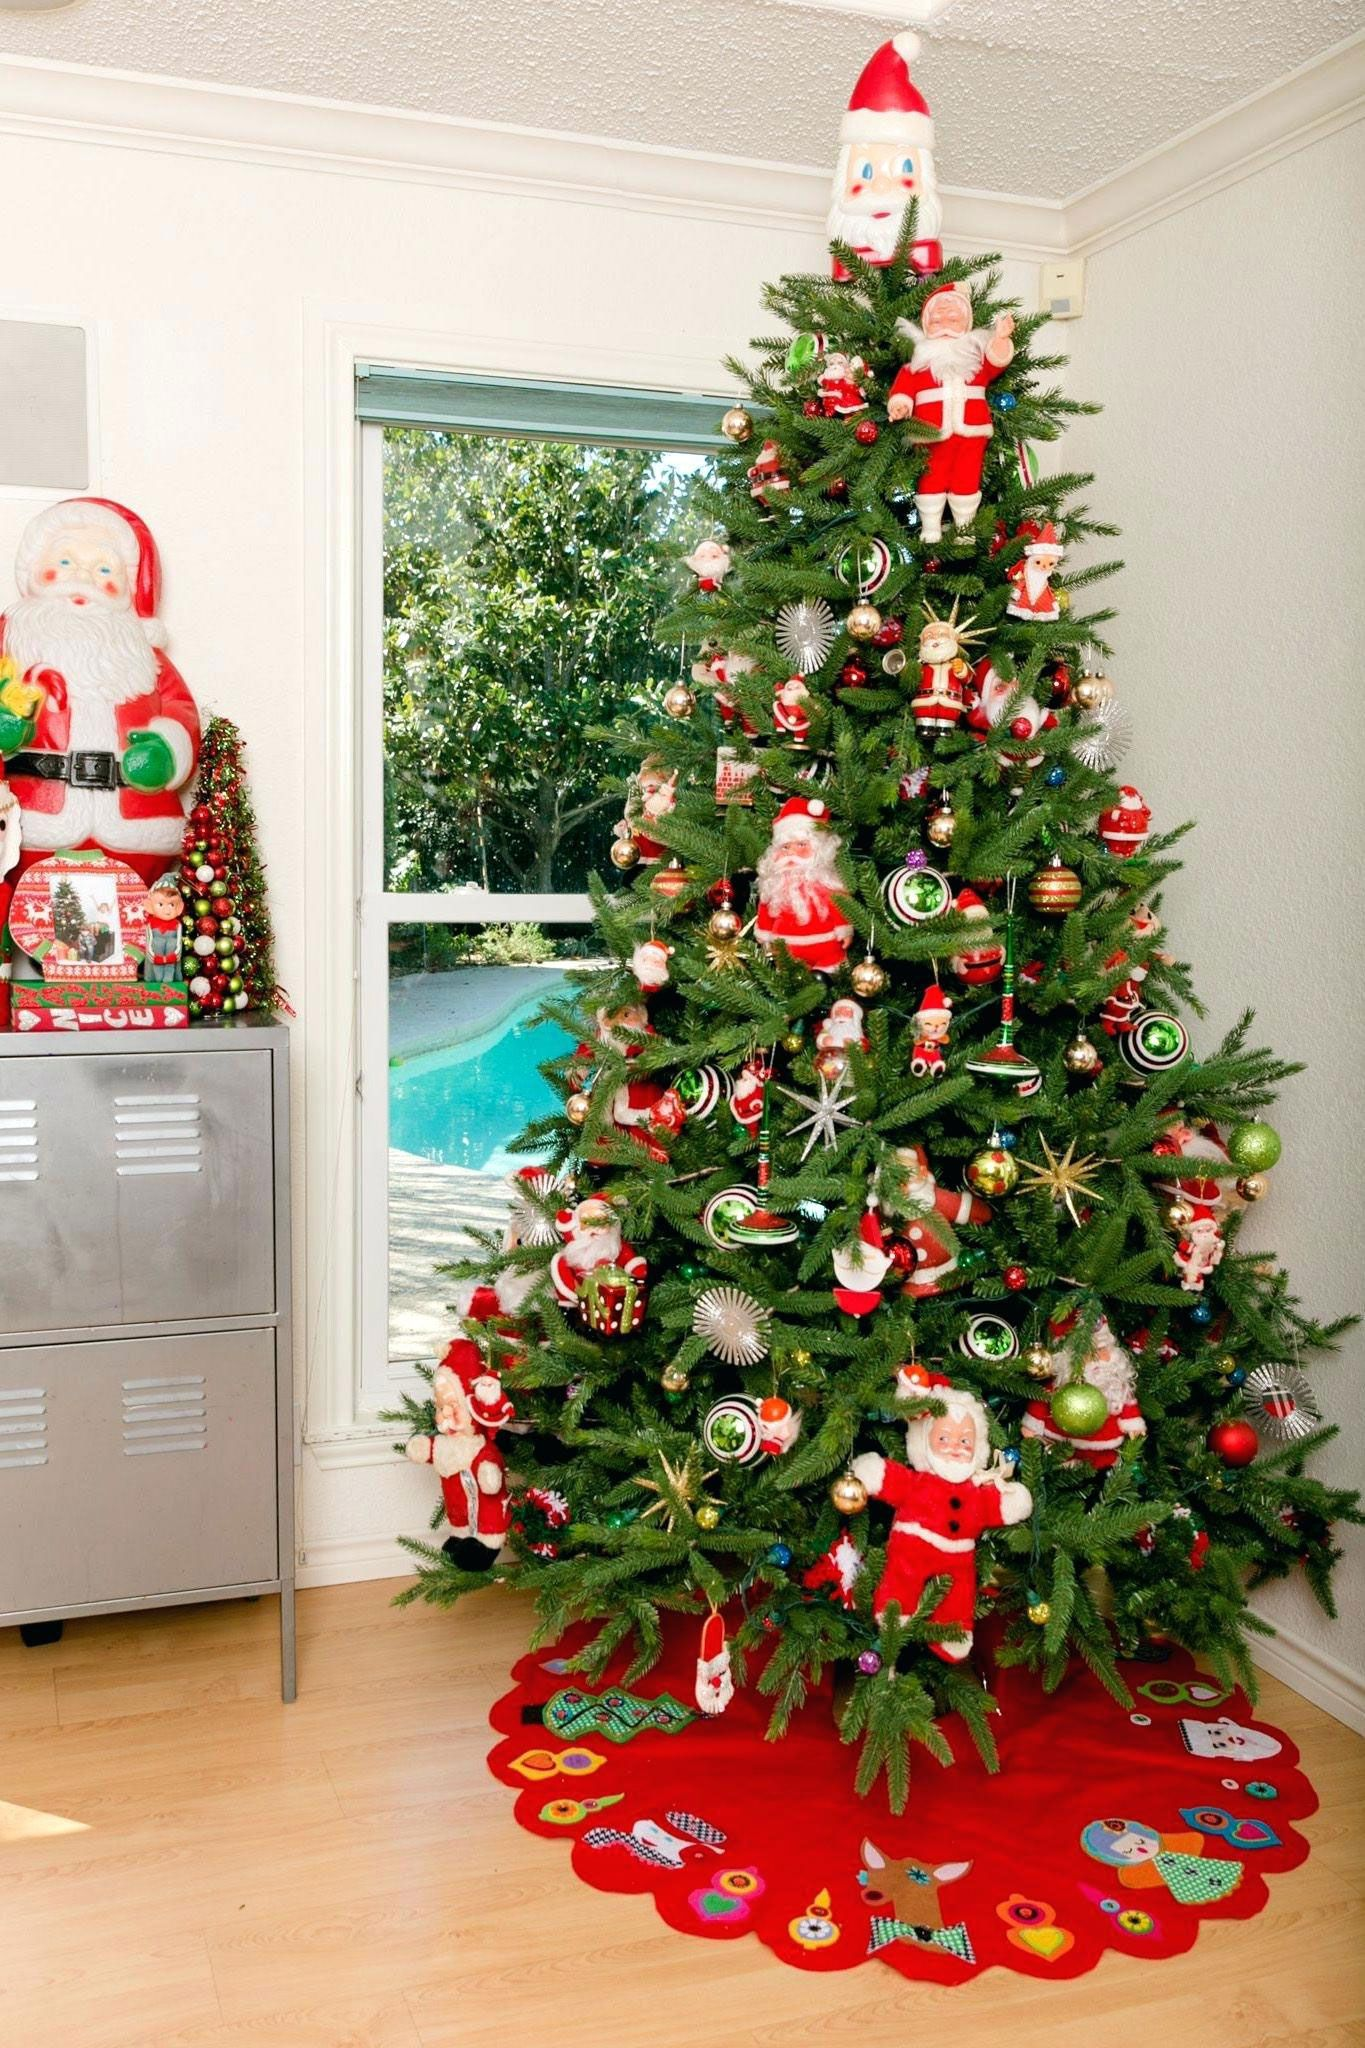 Christmas Tree Holiday Decor Christmas Decorations Christmas Crafts